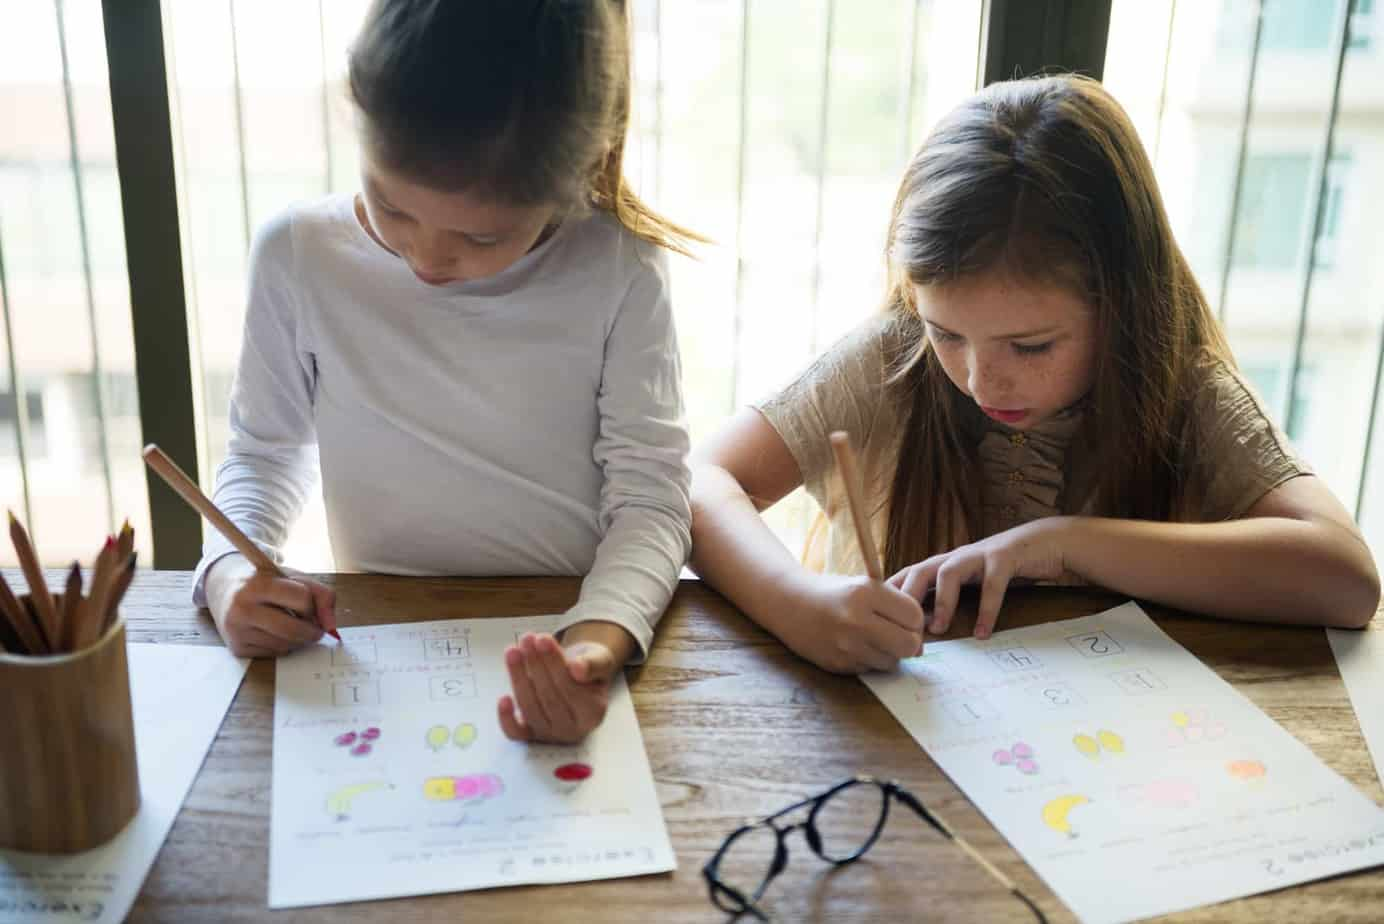 Are you considering homeschooling your kids this year or possibly in the future? This is a real-life list of pros and cons of homeschooling to help you make an informed and confident school choice decision.